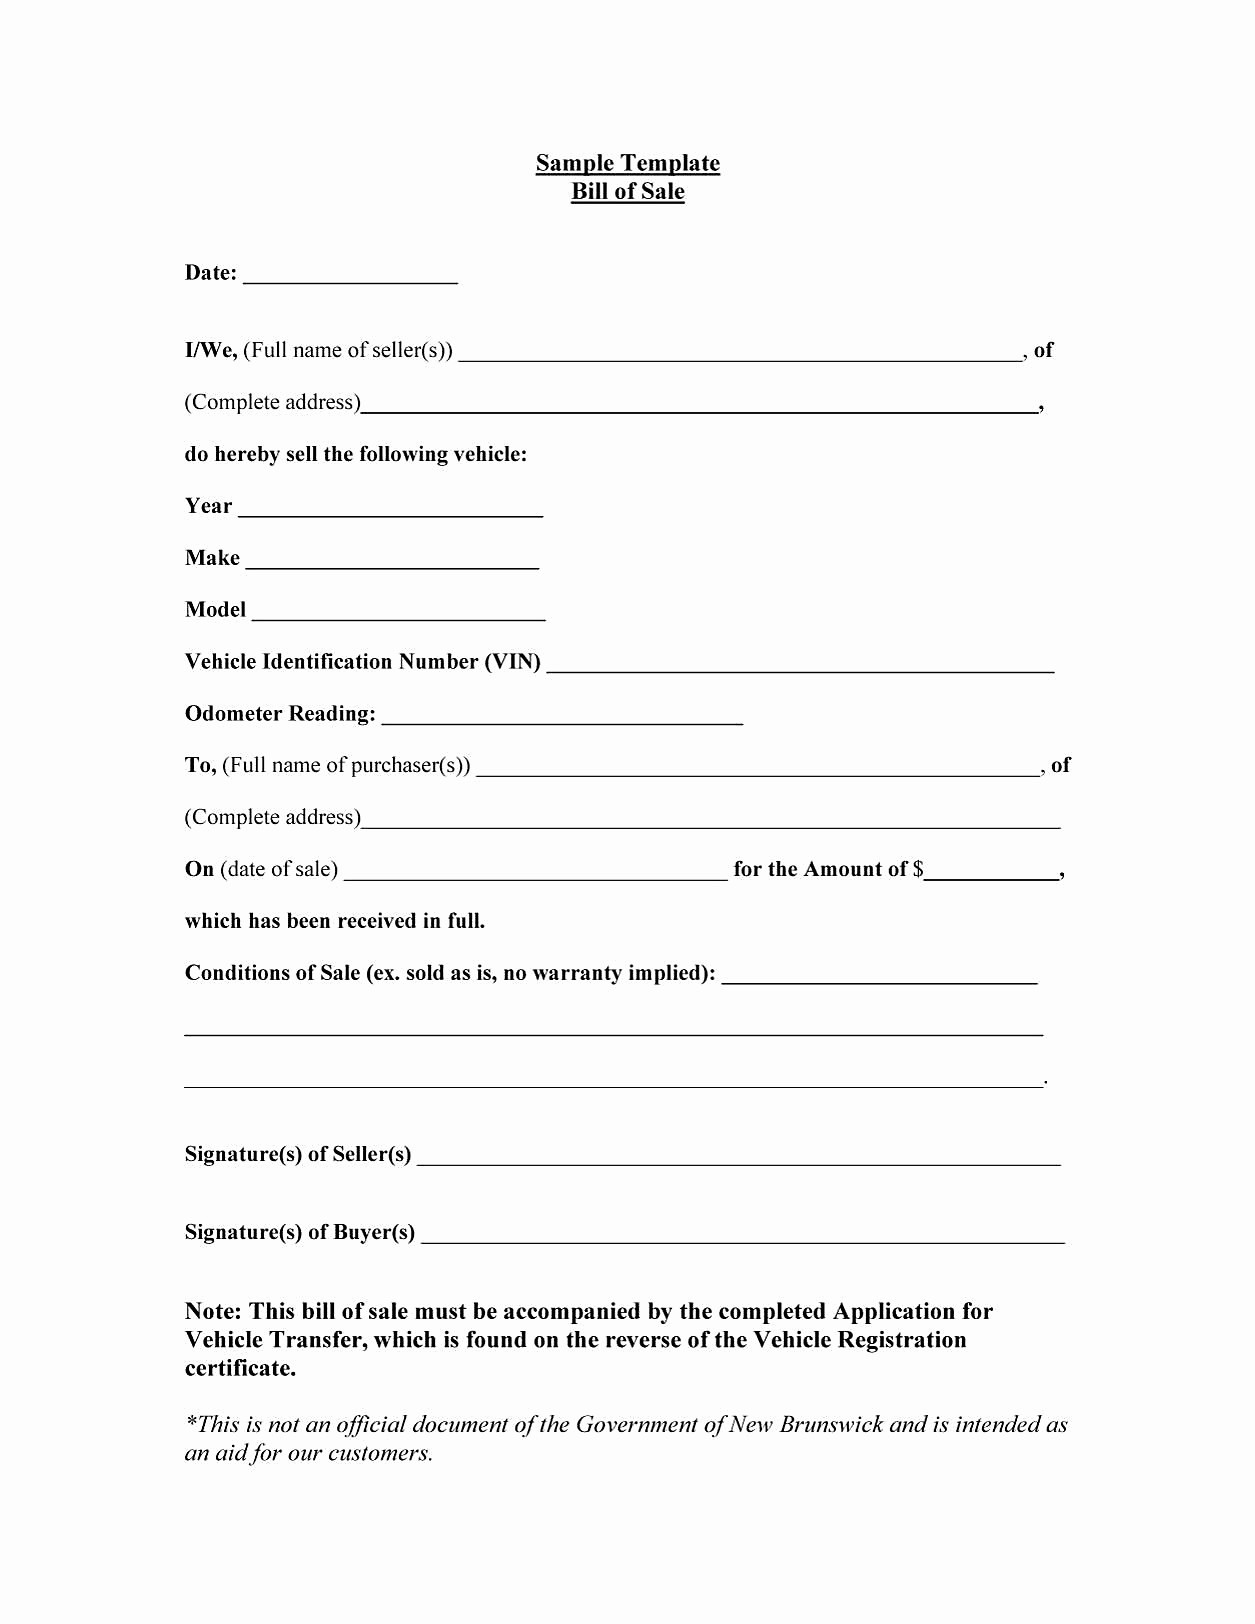 Bill Of Sale Automobile Template Fresh Bill Sale Sample Document Mughals